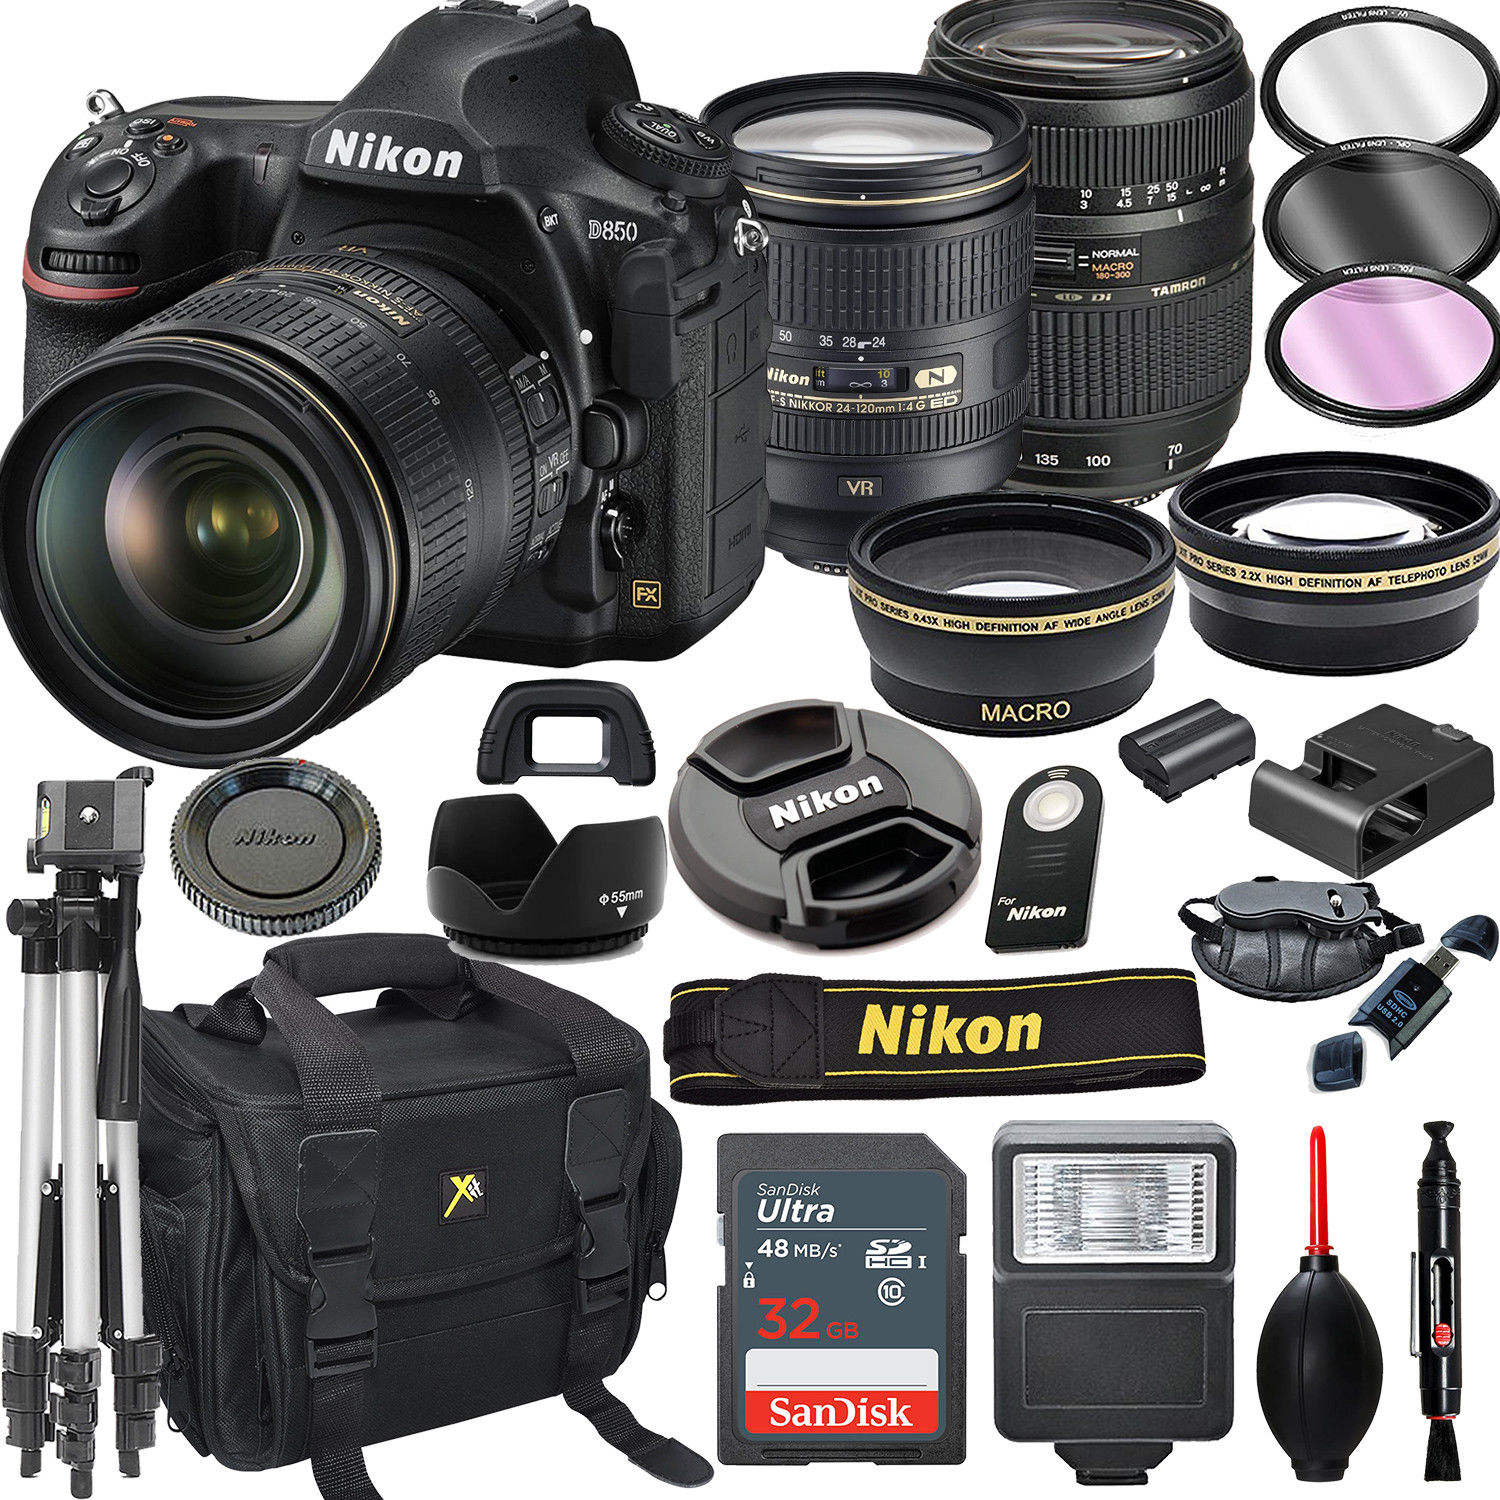 NEW ORIGINAL HOT SALES 100% ORIGINAL_Nikons D850 FX DSLR Camera with 24-120mm f/4G AF-S ED VR Lens+ 64GB Pro Video Kit